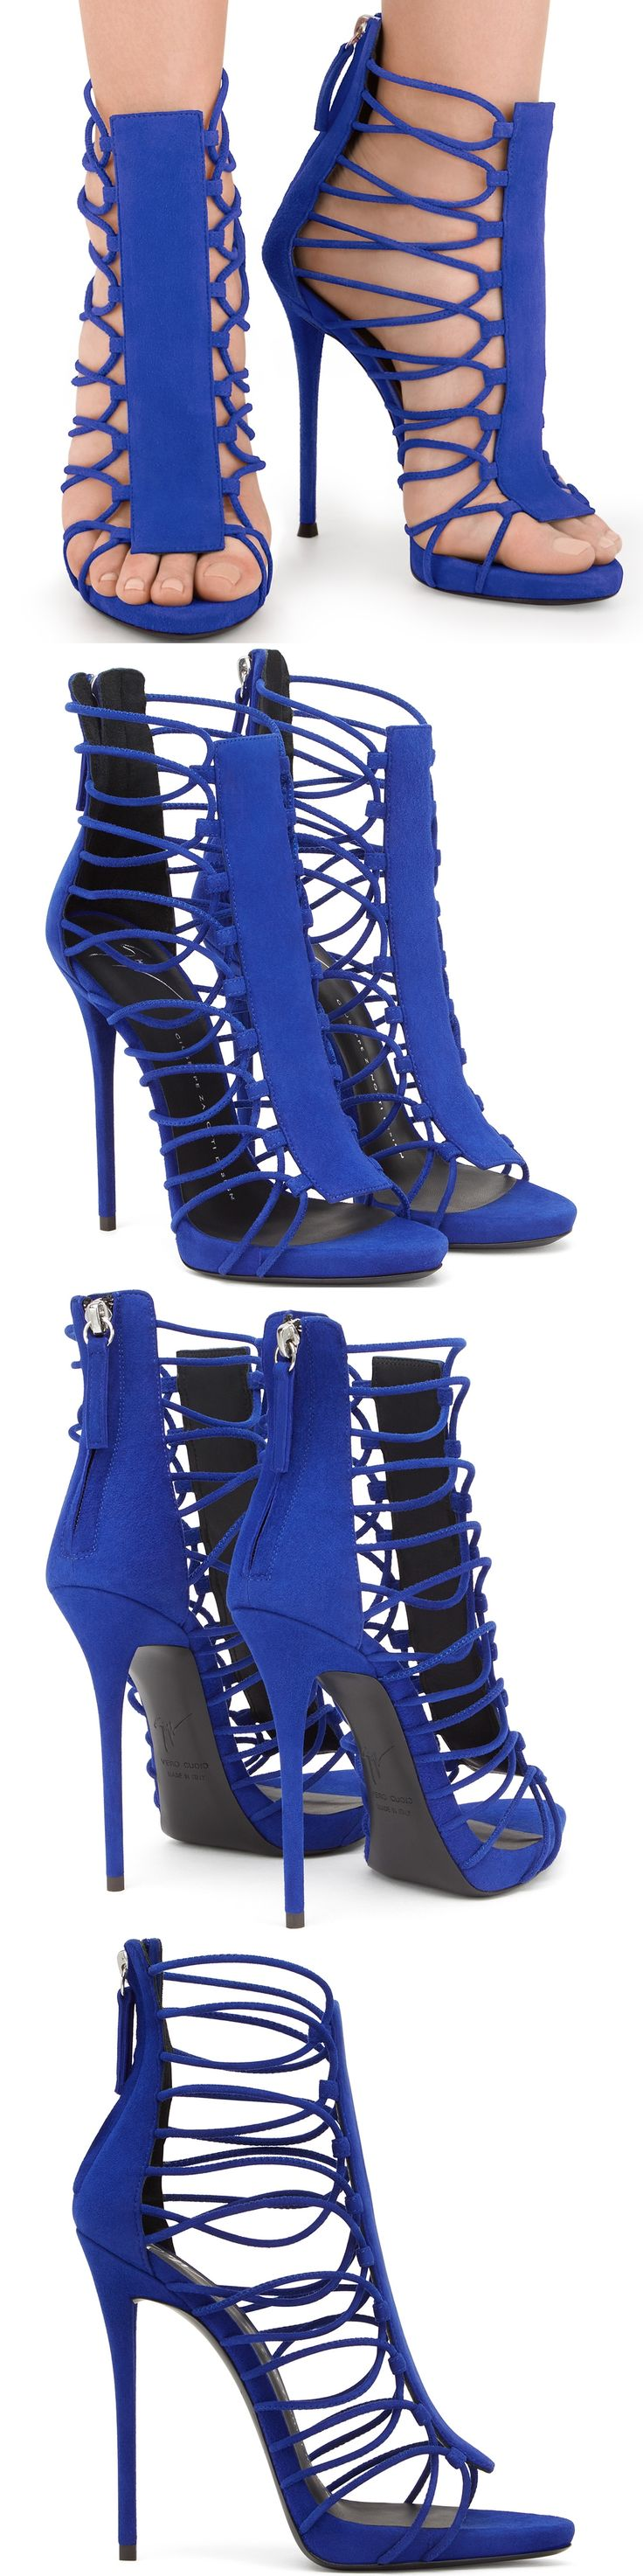 Straps climb the sides of these open-toe sandals, which front and back panels in rich blue suede add definition to the design.